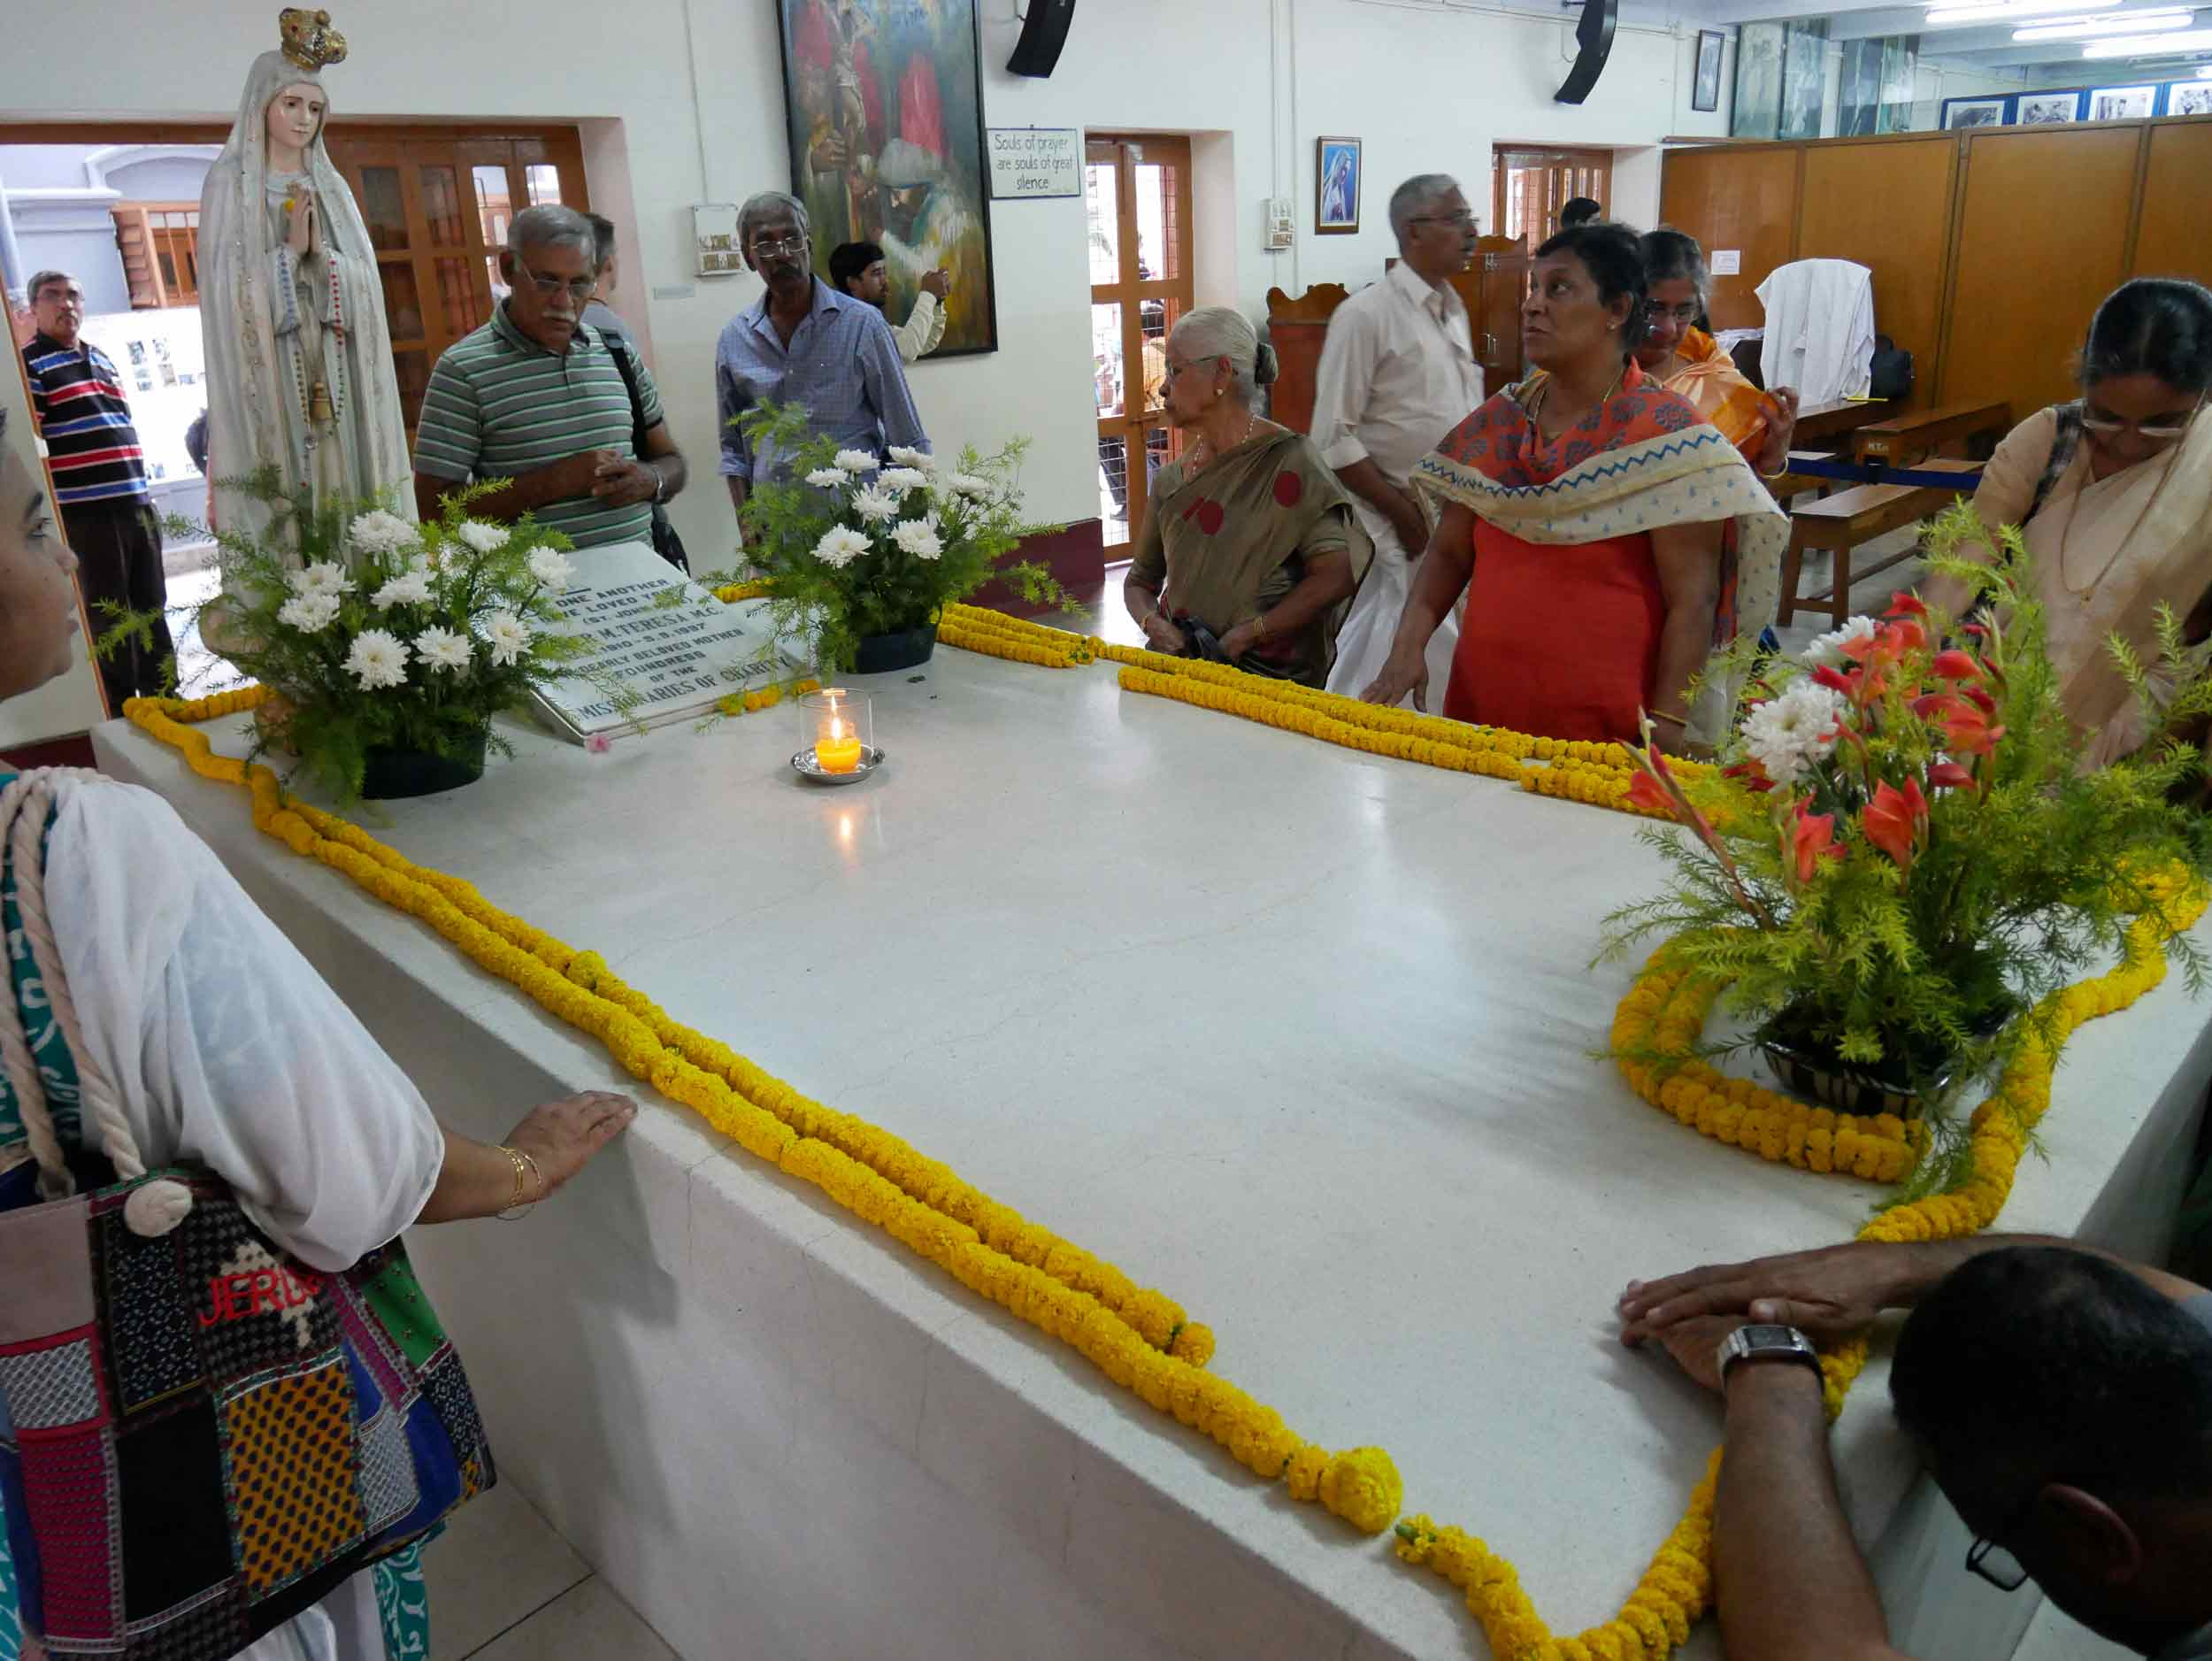 Visitors come from all over the world to pay their respects and honor the great deeds of Saint Teresa of Calcutta.